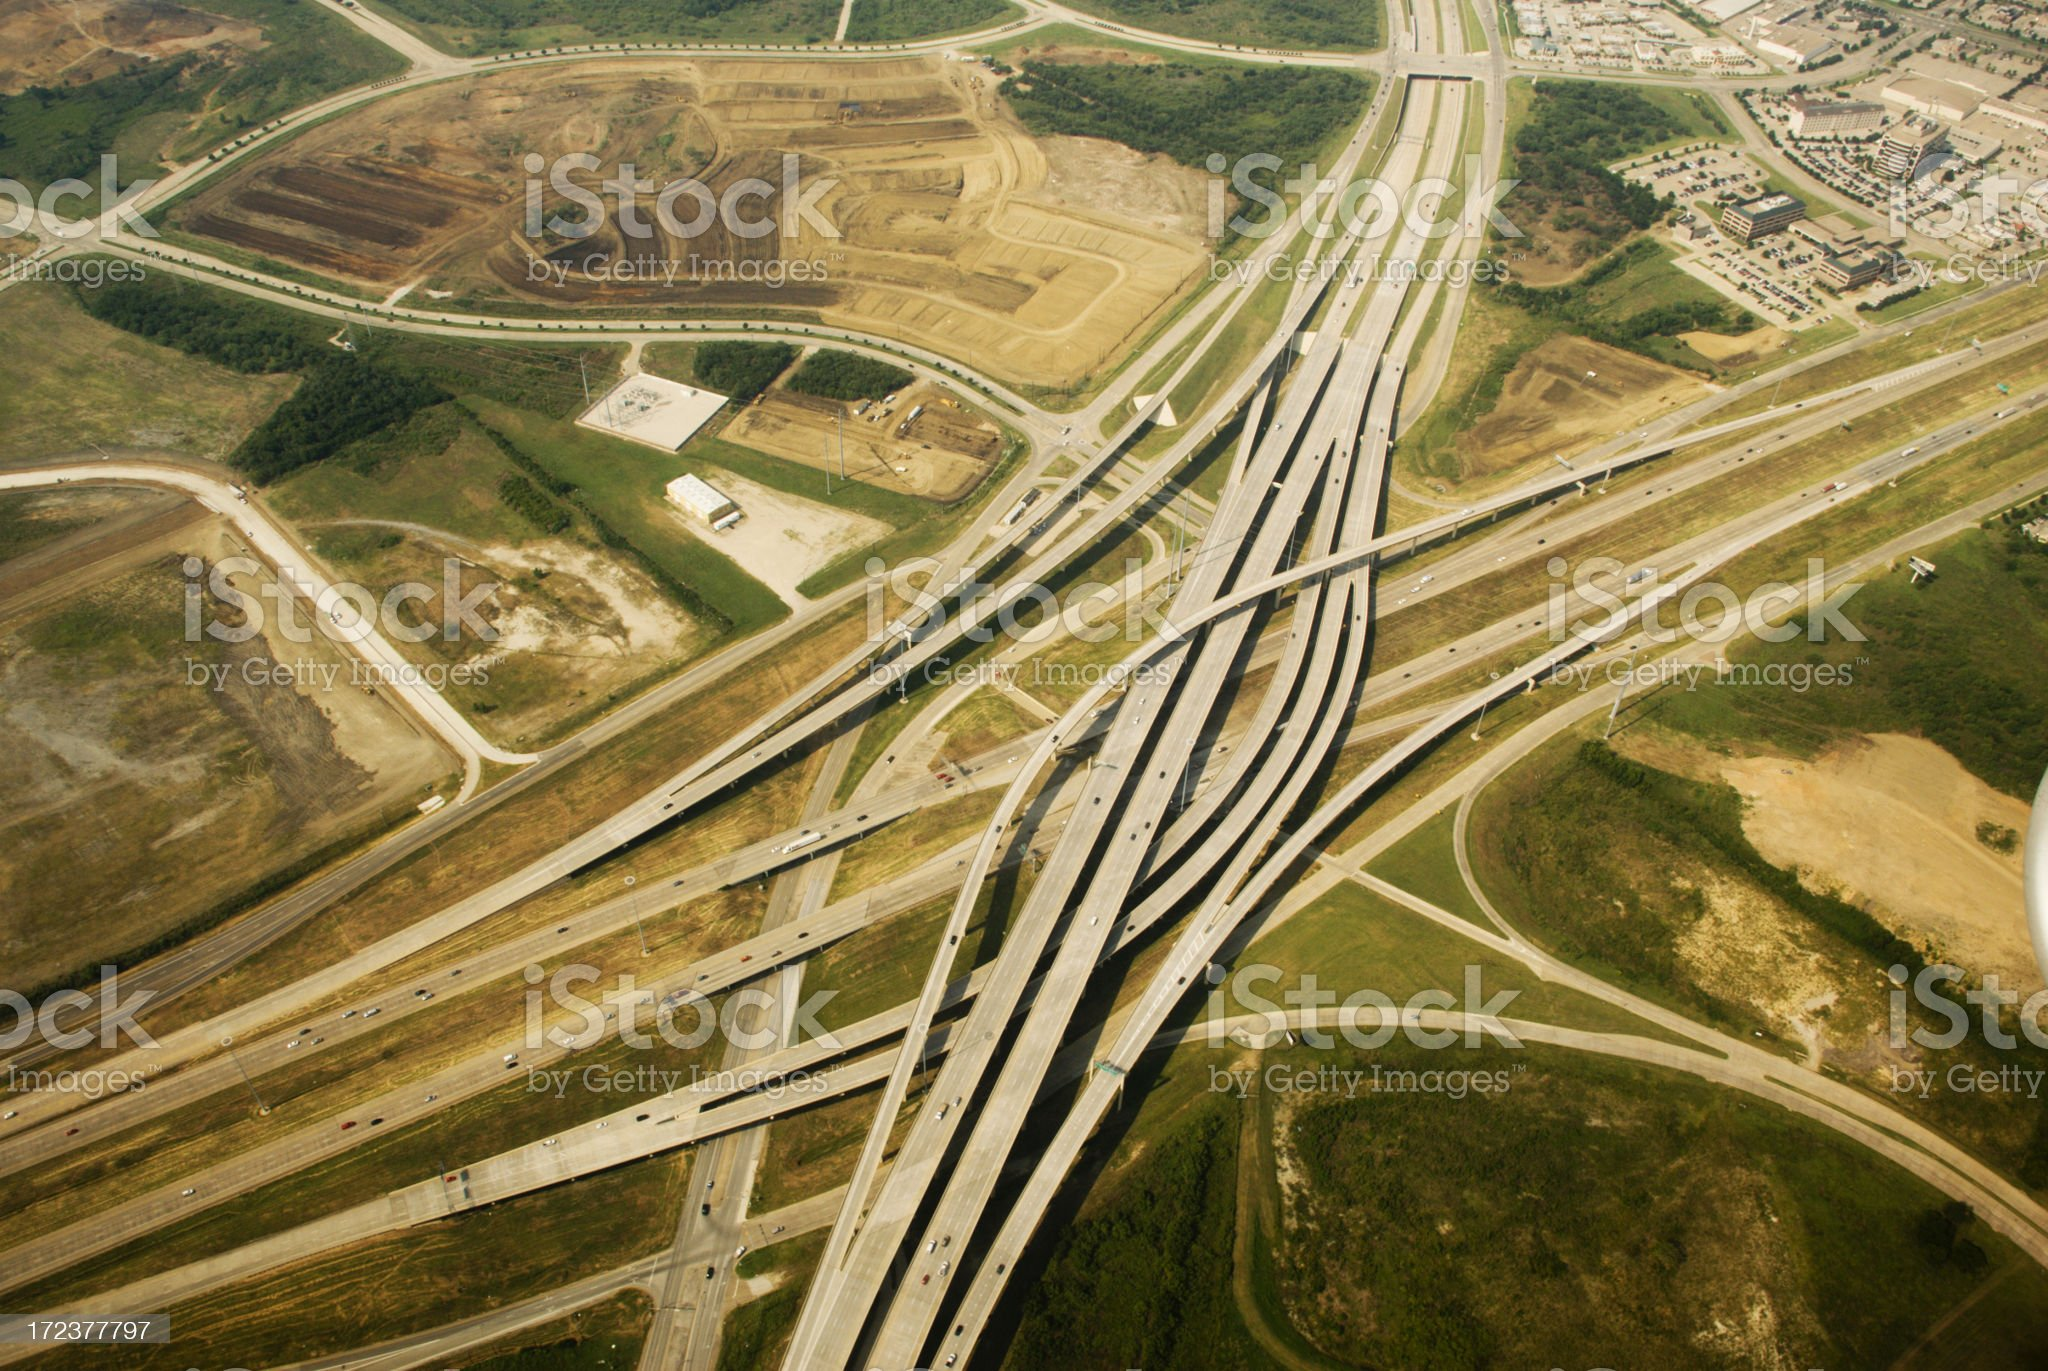 Architectural Highway royalty-free stock photo